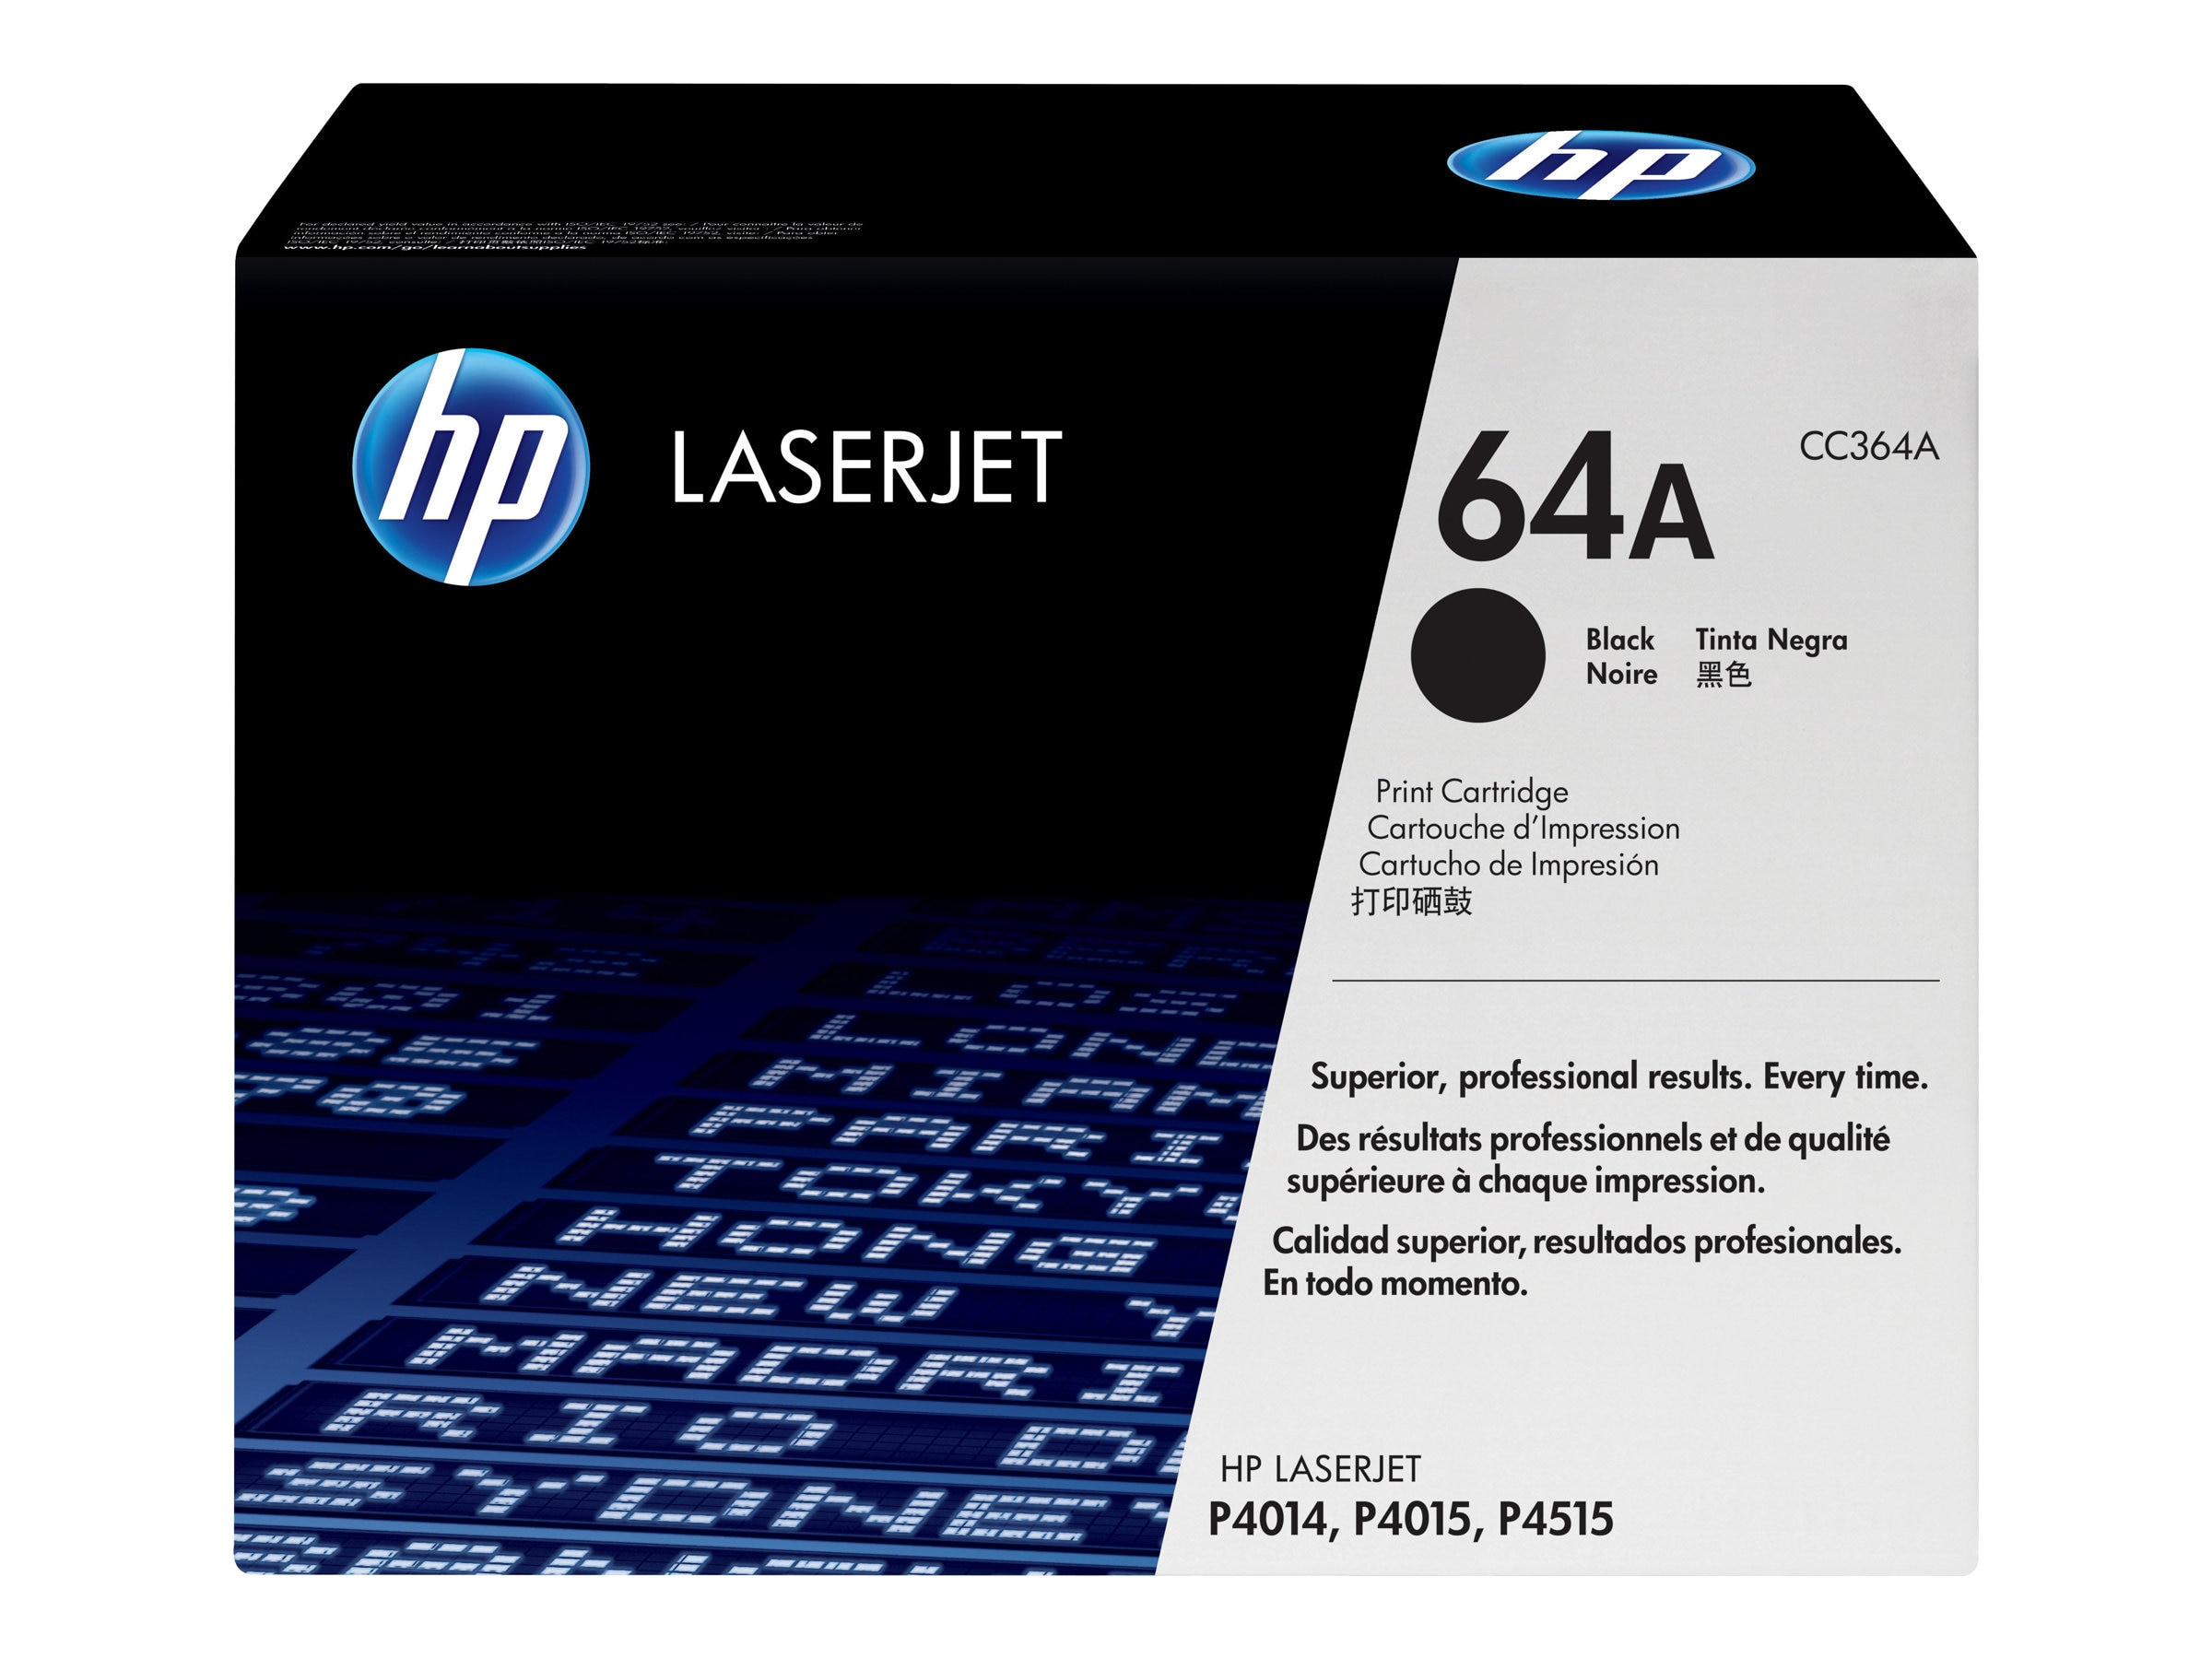 HP 64A (CC364A) Black Original LaserJet Toner Cartridge for HP LaserJet P4015 & P4515 Series